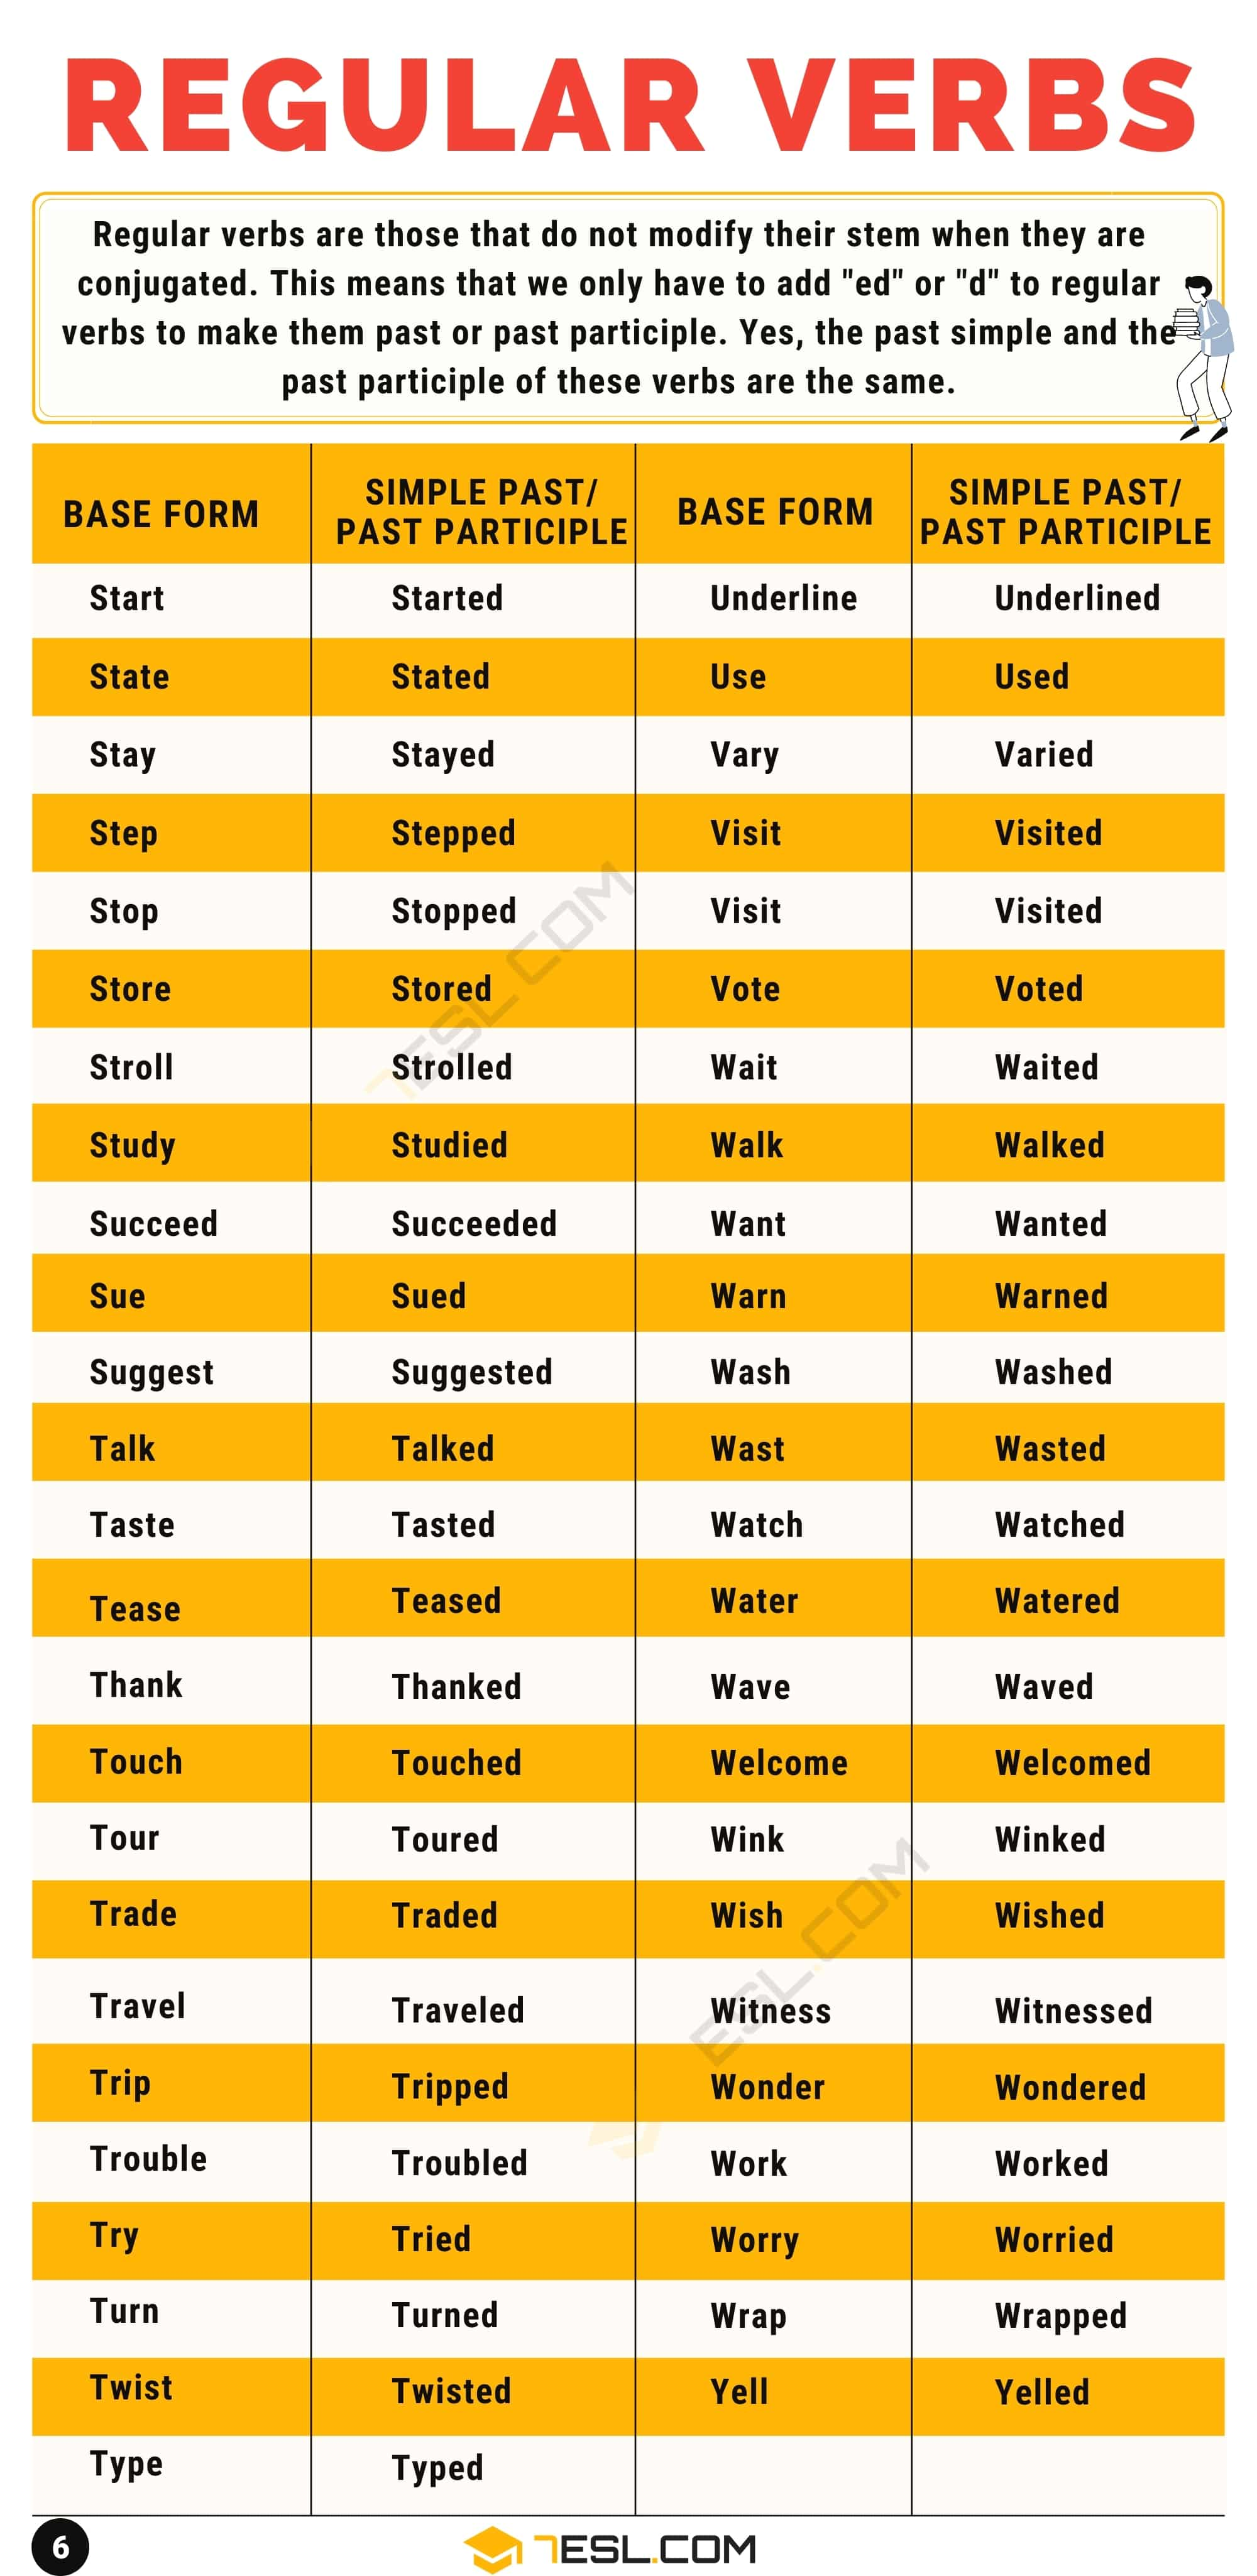 Regular Verbs: What Is A Regular Verb? List of 300+ Useful Regular Verbs in English